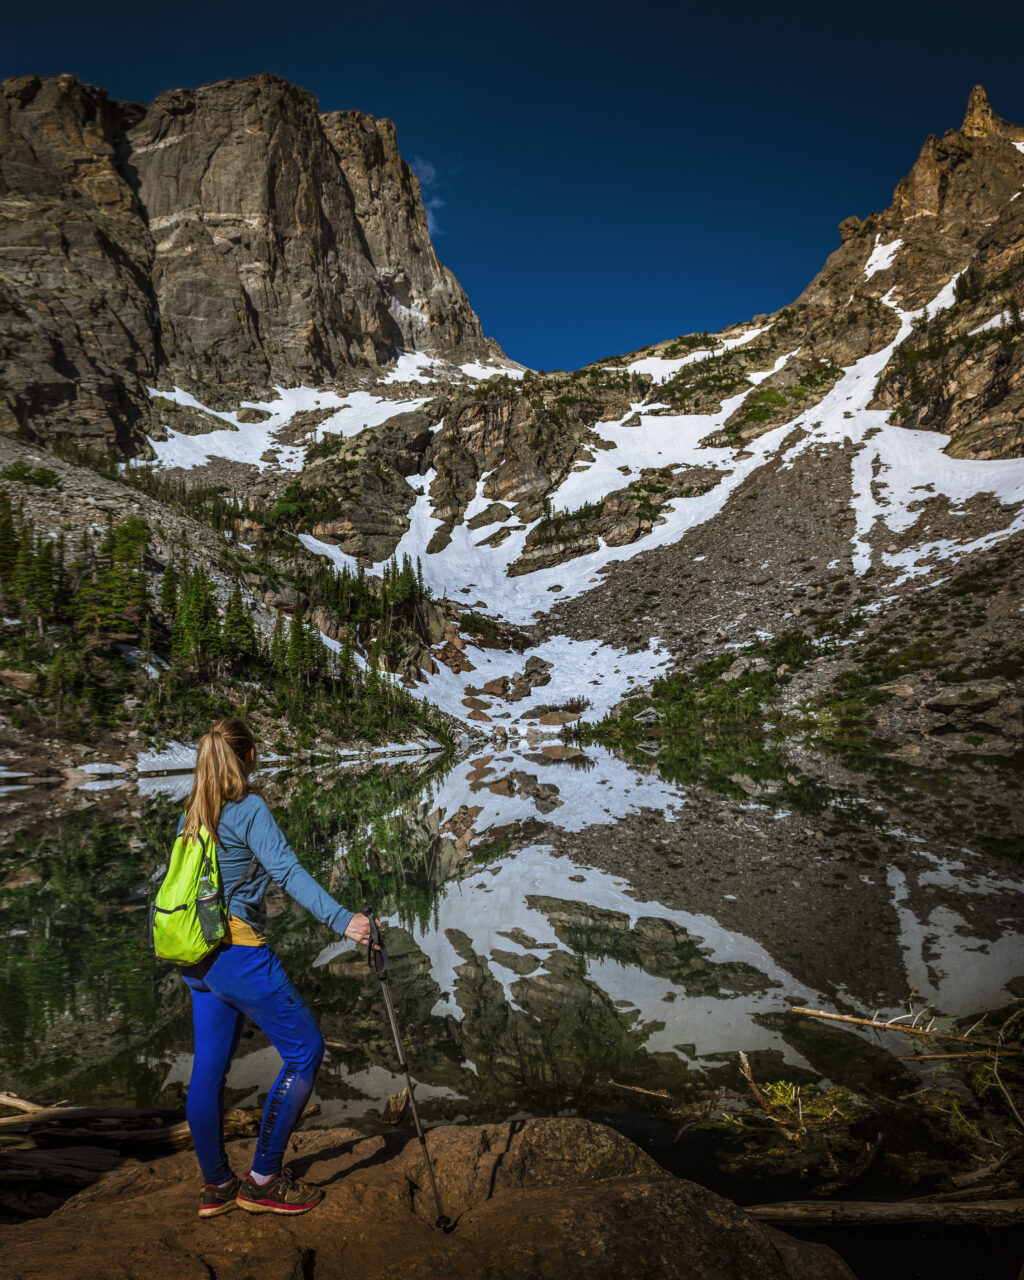 Kat views the reflection of Hallet Peak in a glassine Emerald Lake.